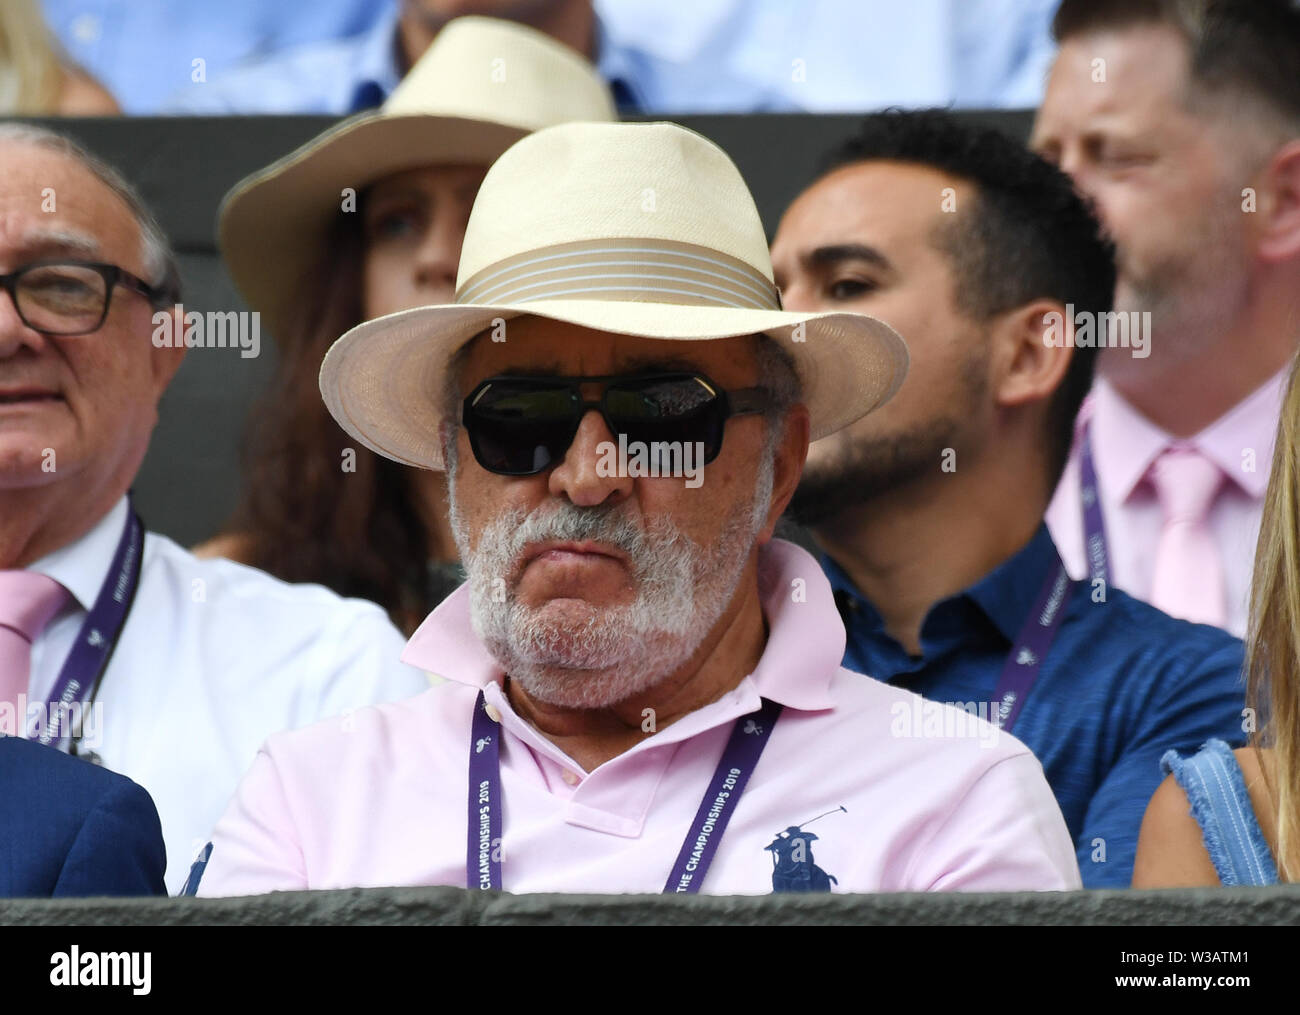 "London, UK. 13 July 2019 The Championships Wimbledon 2019 13072019 Billionaire Romanian  Entrepreneur Ion Tiriac, also known as the ""Brasov Bulldozer""  watches compatriot Simona Halep  celebrates as she wins Ladies Singles Final. Credit: Roger Parker/Alamy Live News - Stock Image"